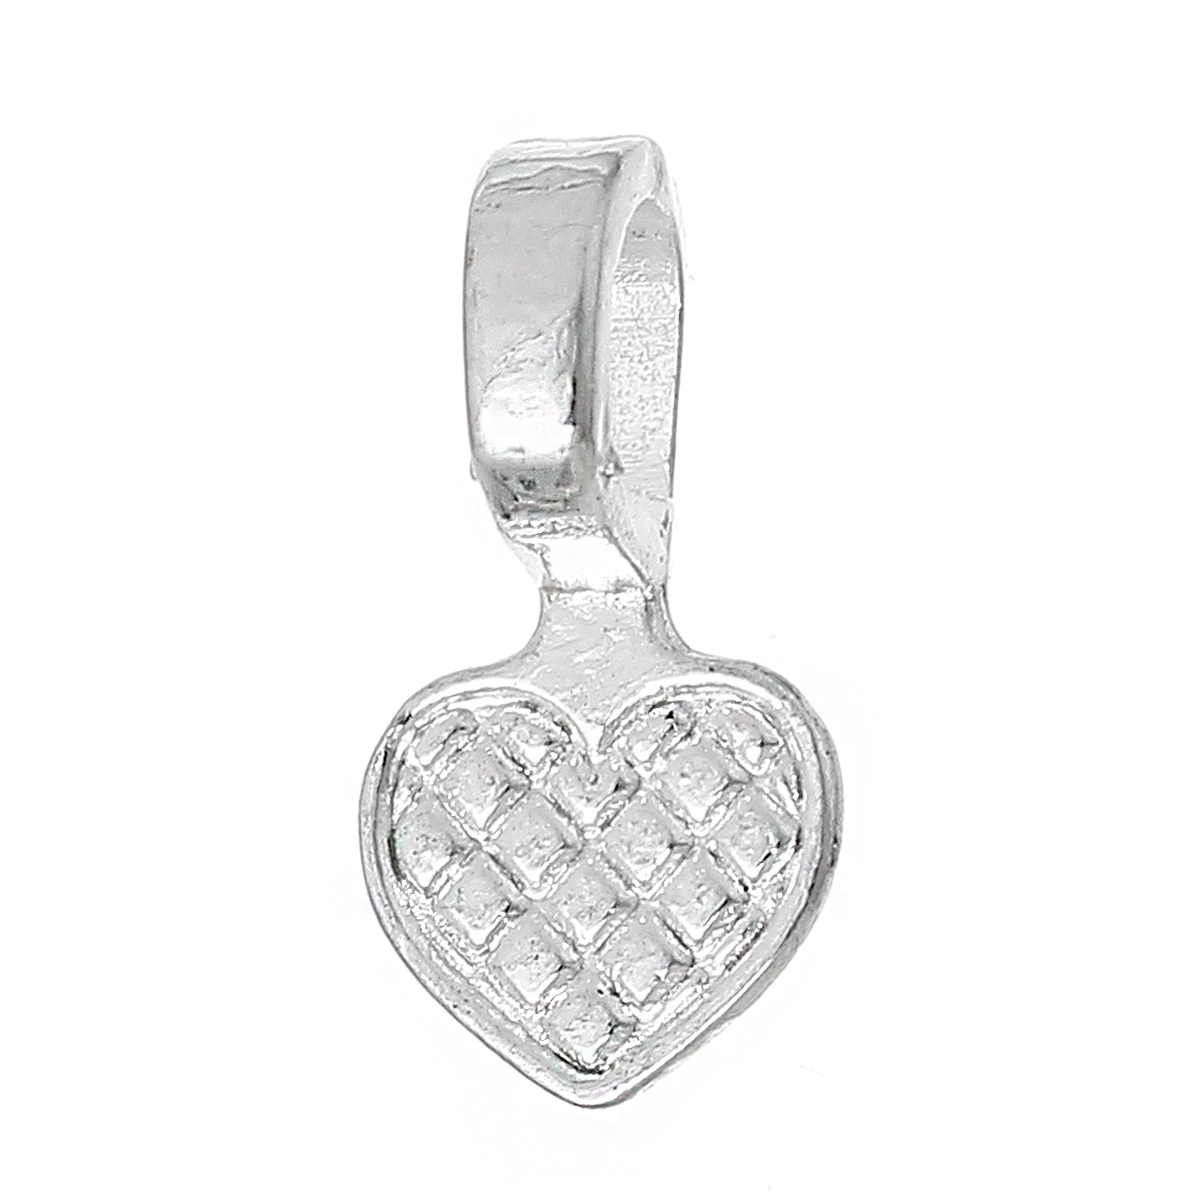 DoreenBeads Glue on Bail Charm Heart Silver color 16.8mm( 5/8